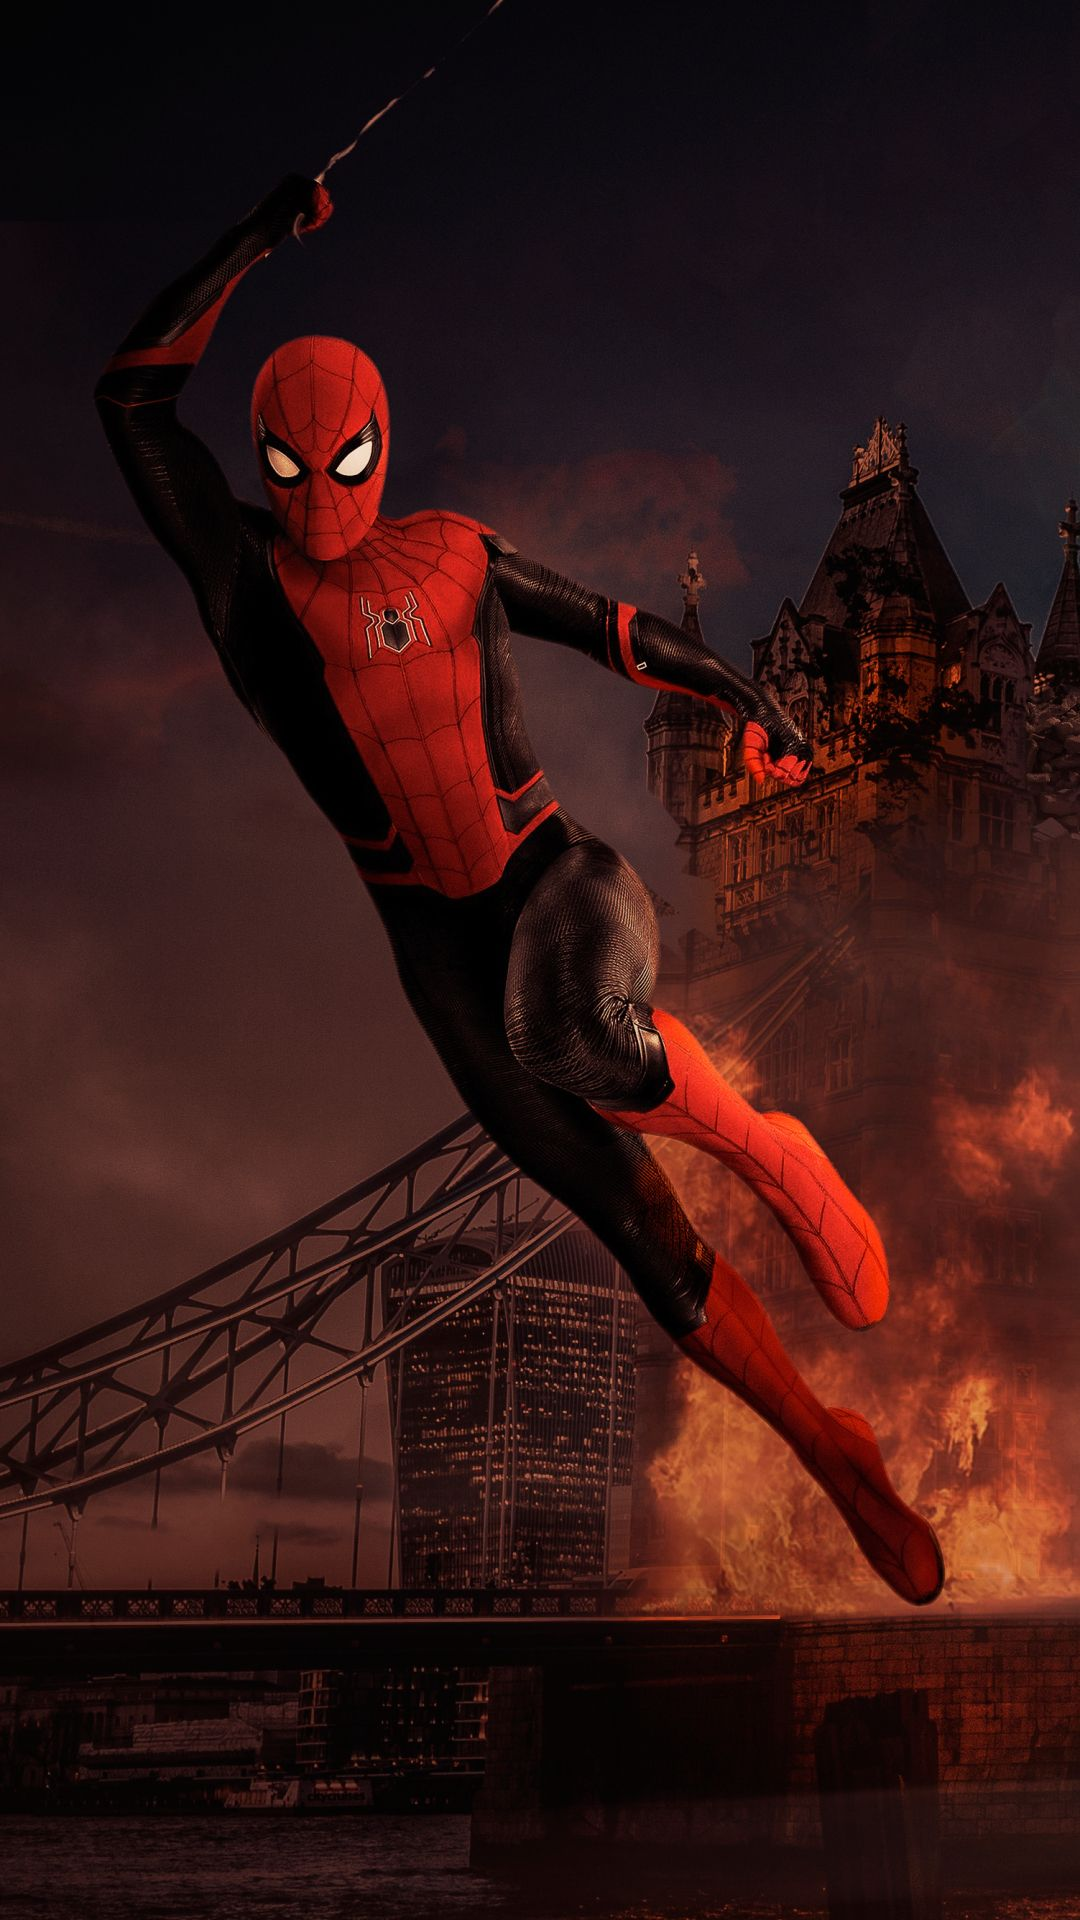 Spider Man Mobile Wallpaper Form The Movie Far From Home Spiderman Marvel Spiderman Marvel Heroes